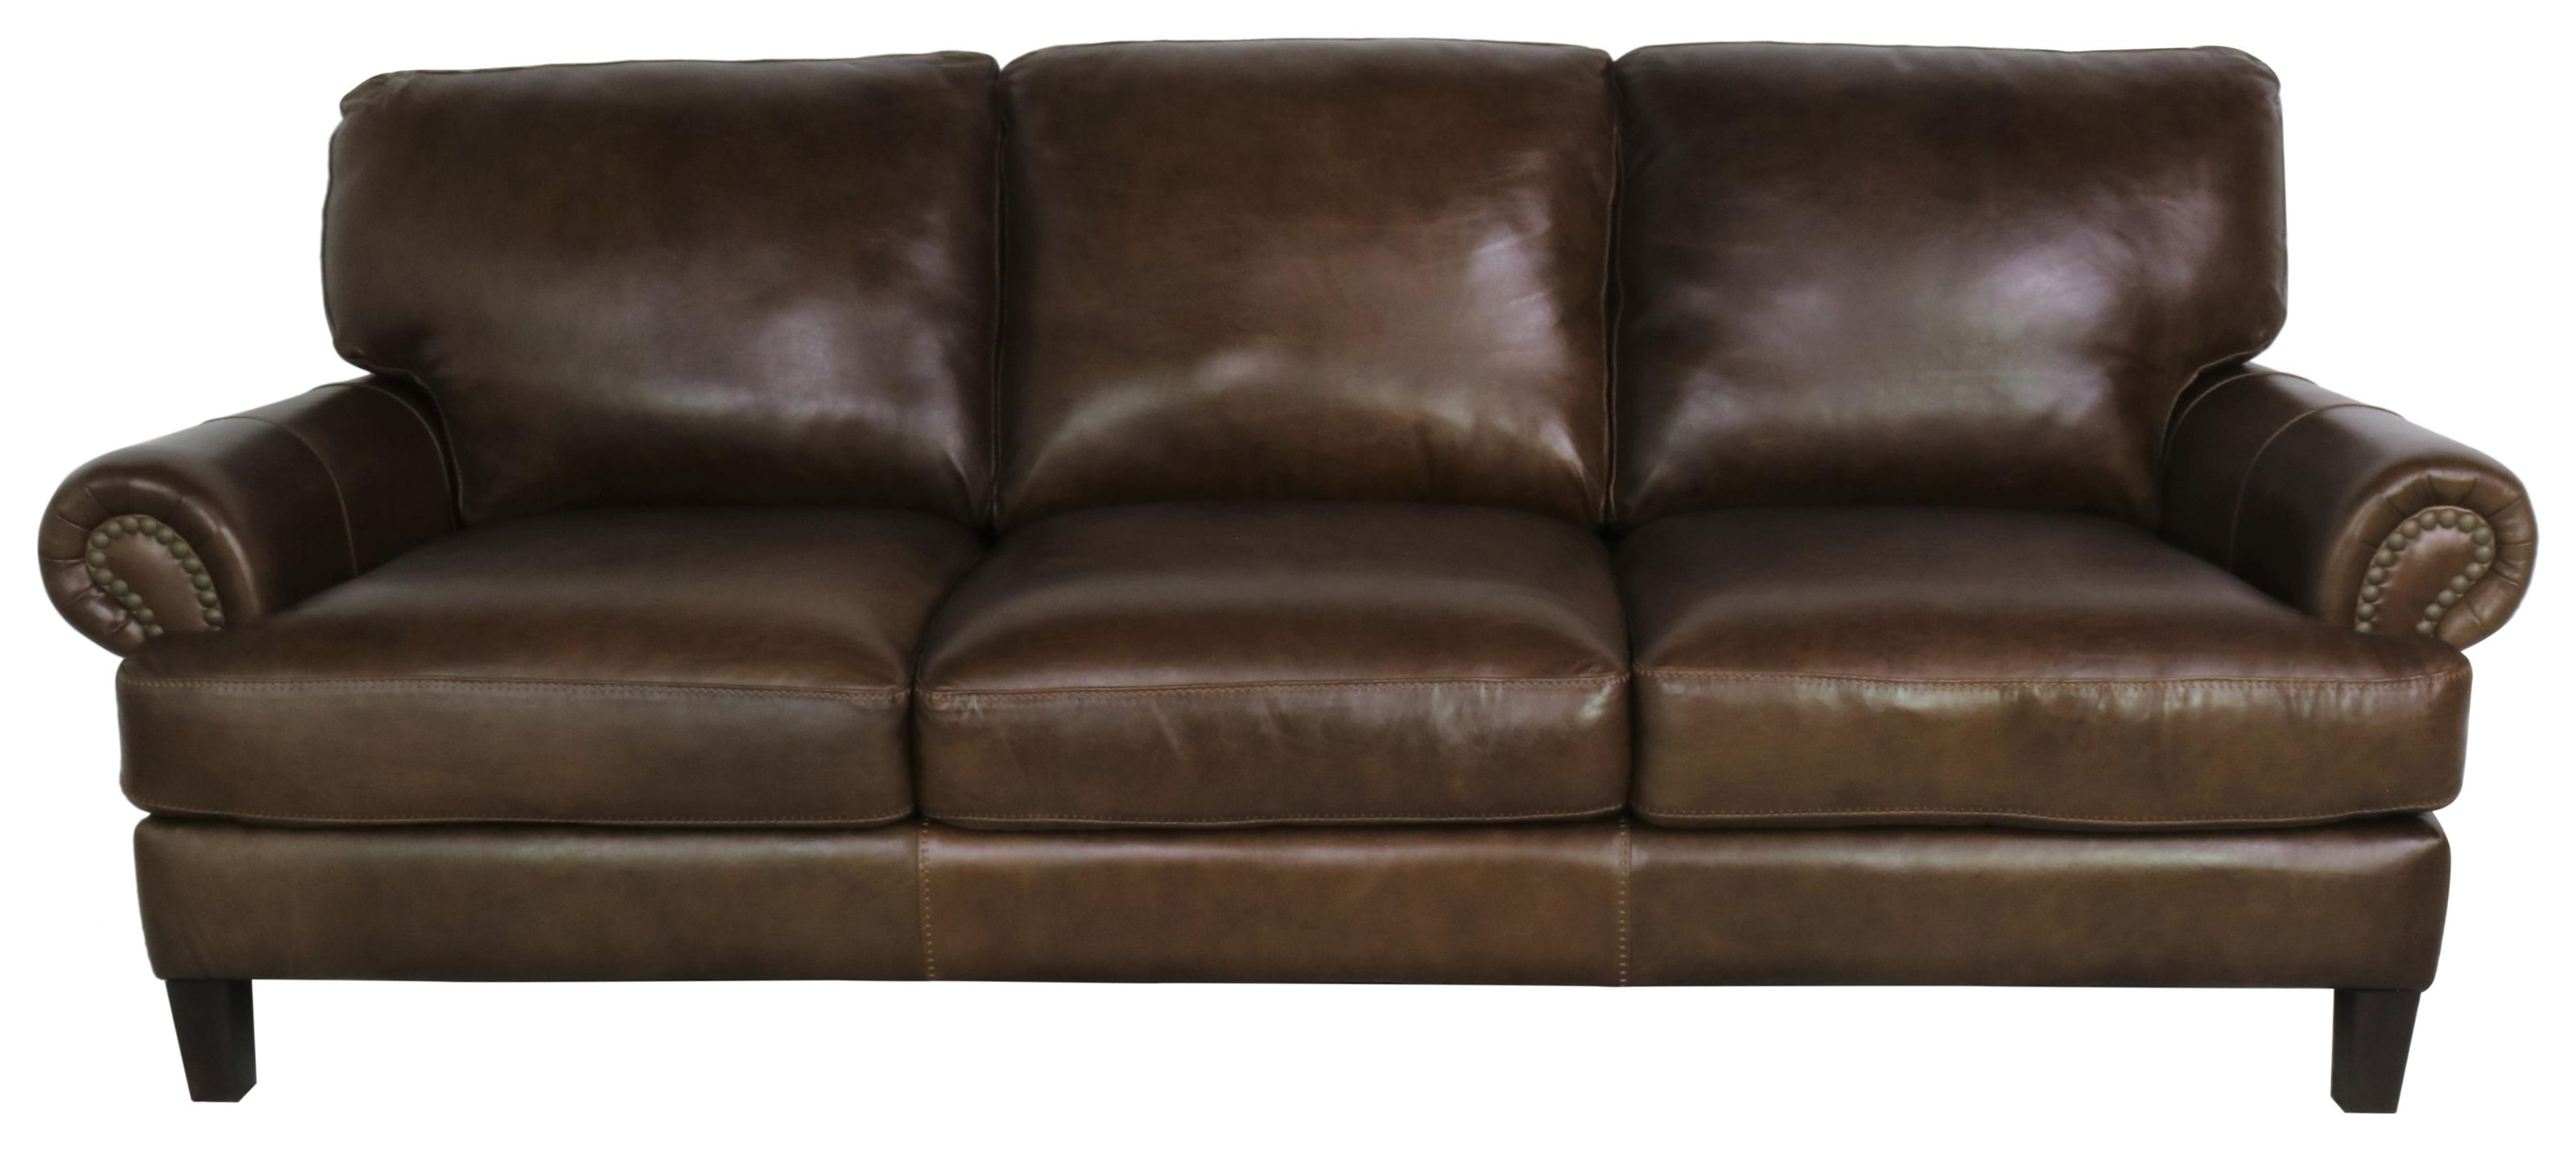 7386 Italian Leather Sofa by Giovanni Leather at Sprintz Furniture